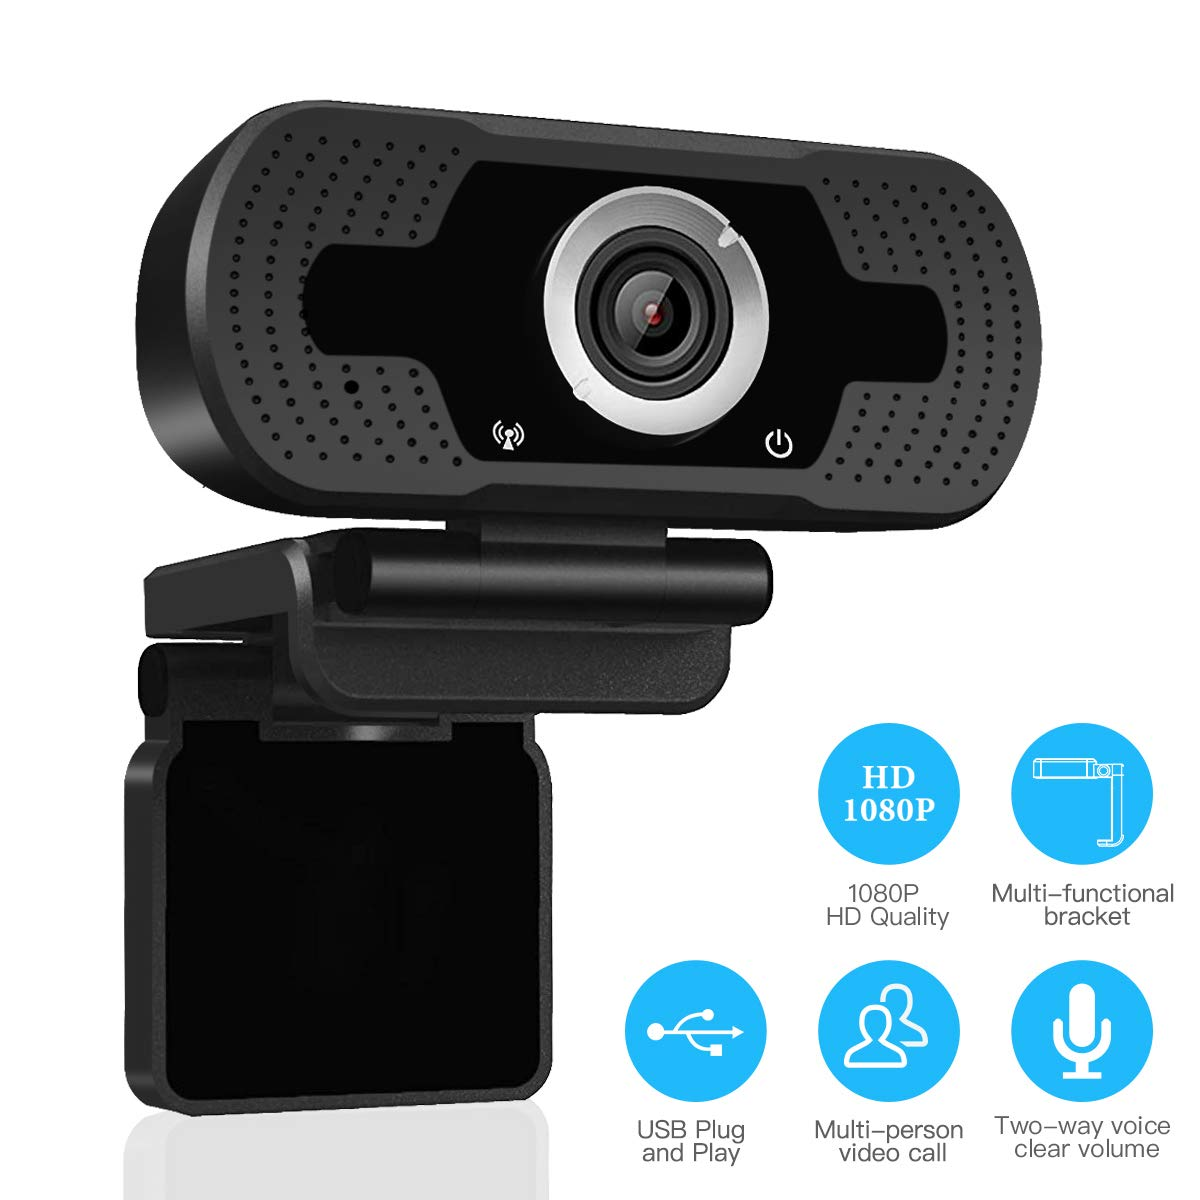 LARMTEK 1080P Full HD Webcam,Computer Laptop Camera for Conference and Video Call, Pro Stream Webcam with Plug and Play Video Calling by LarmTek